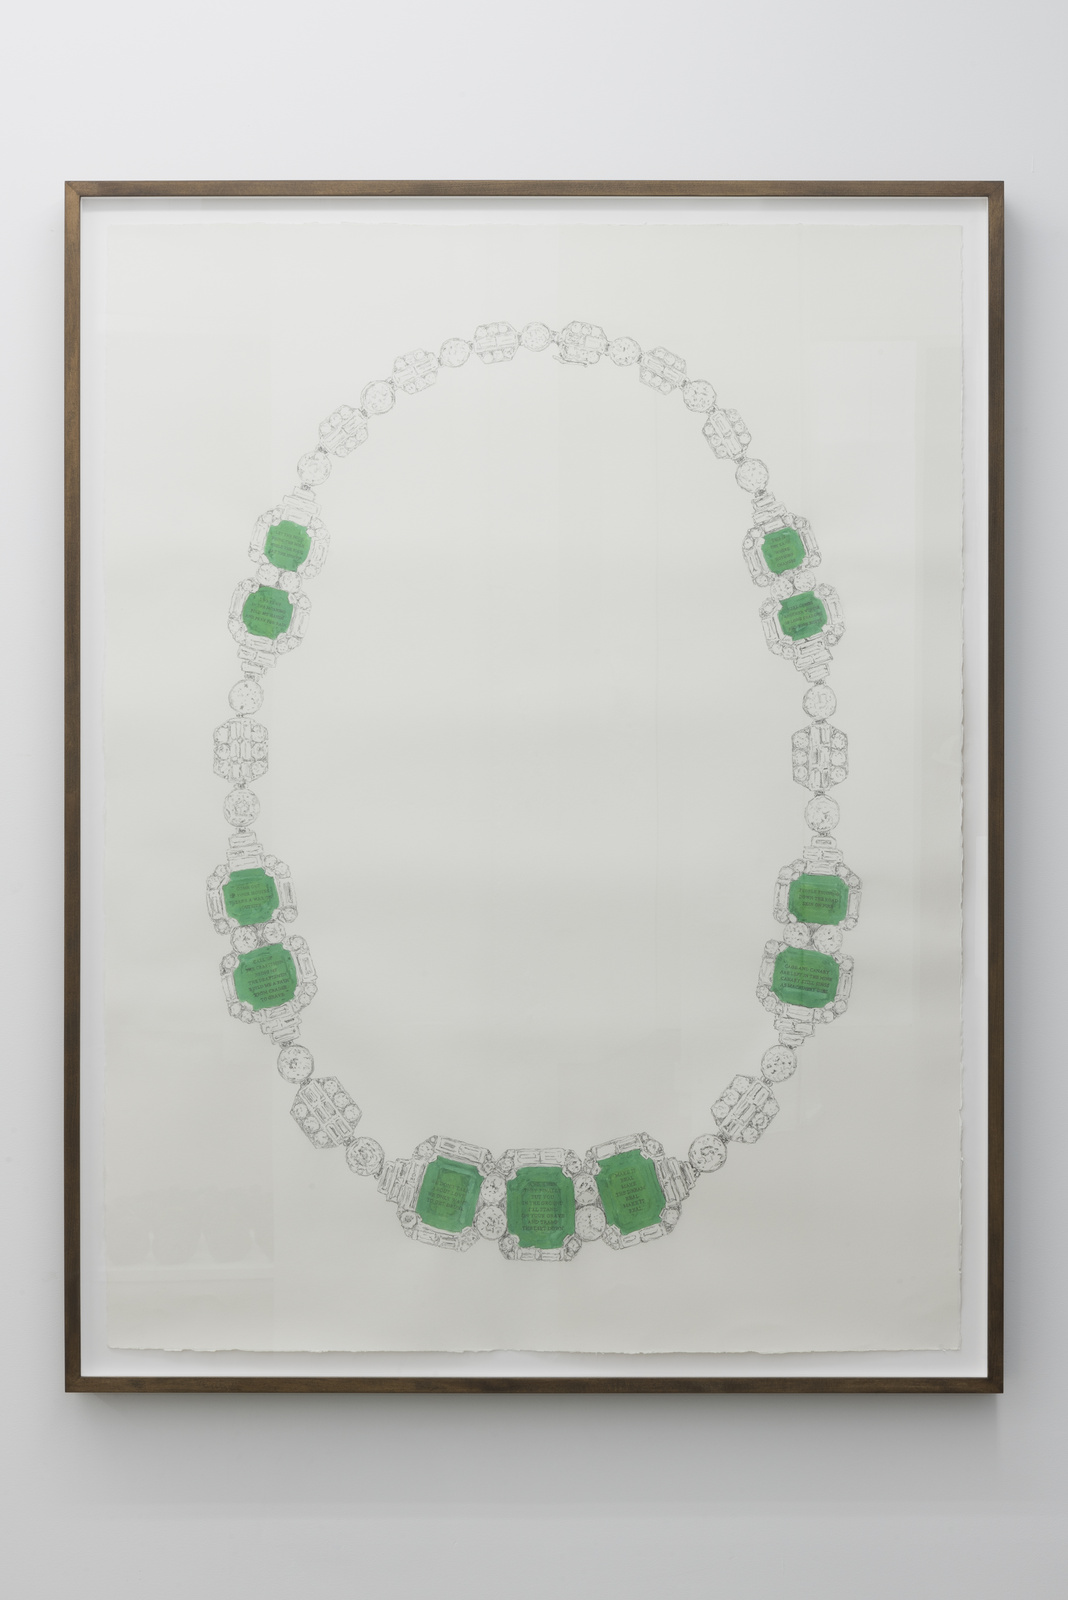 CS_Collar de esmeraldas_2016_Graphite and watercolor on paper_160x124cm